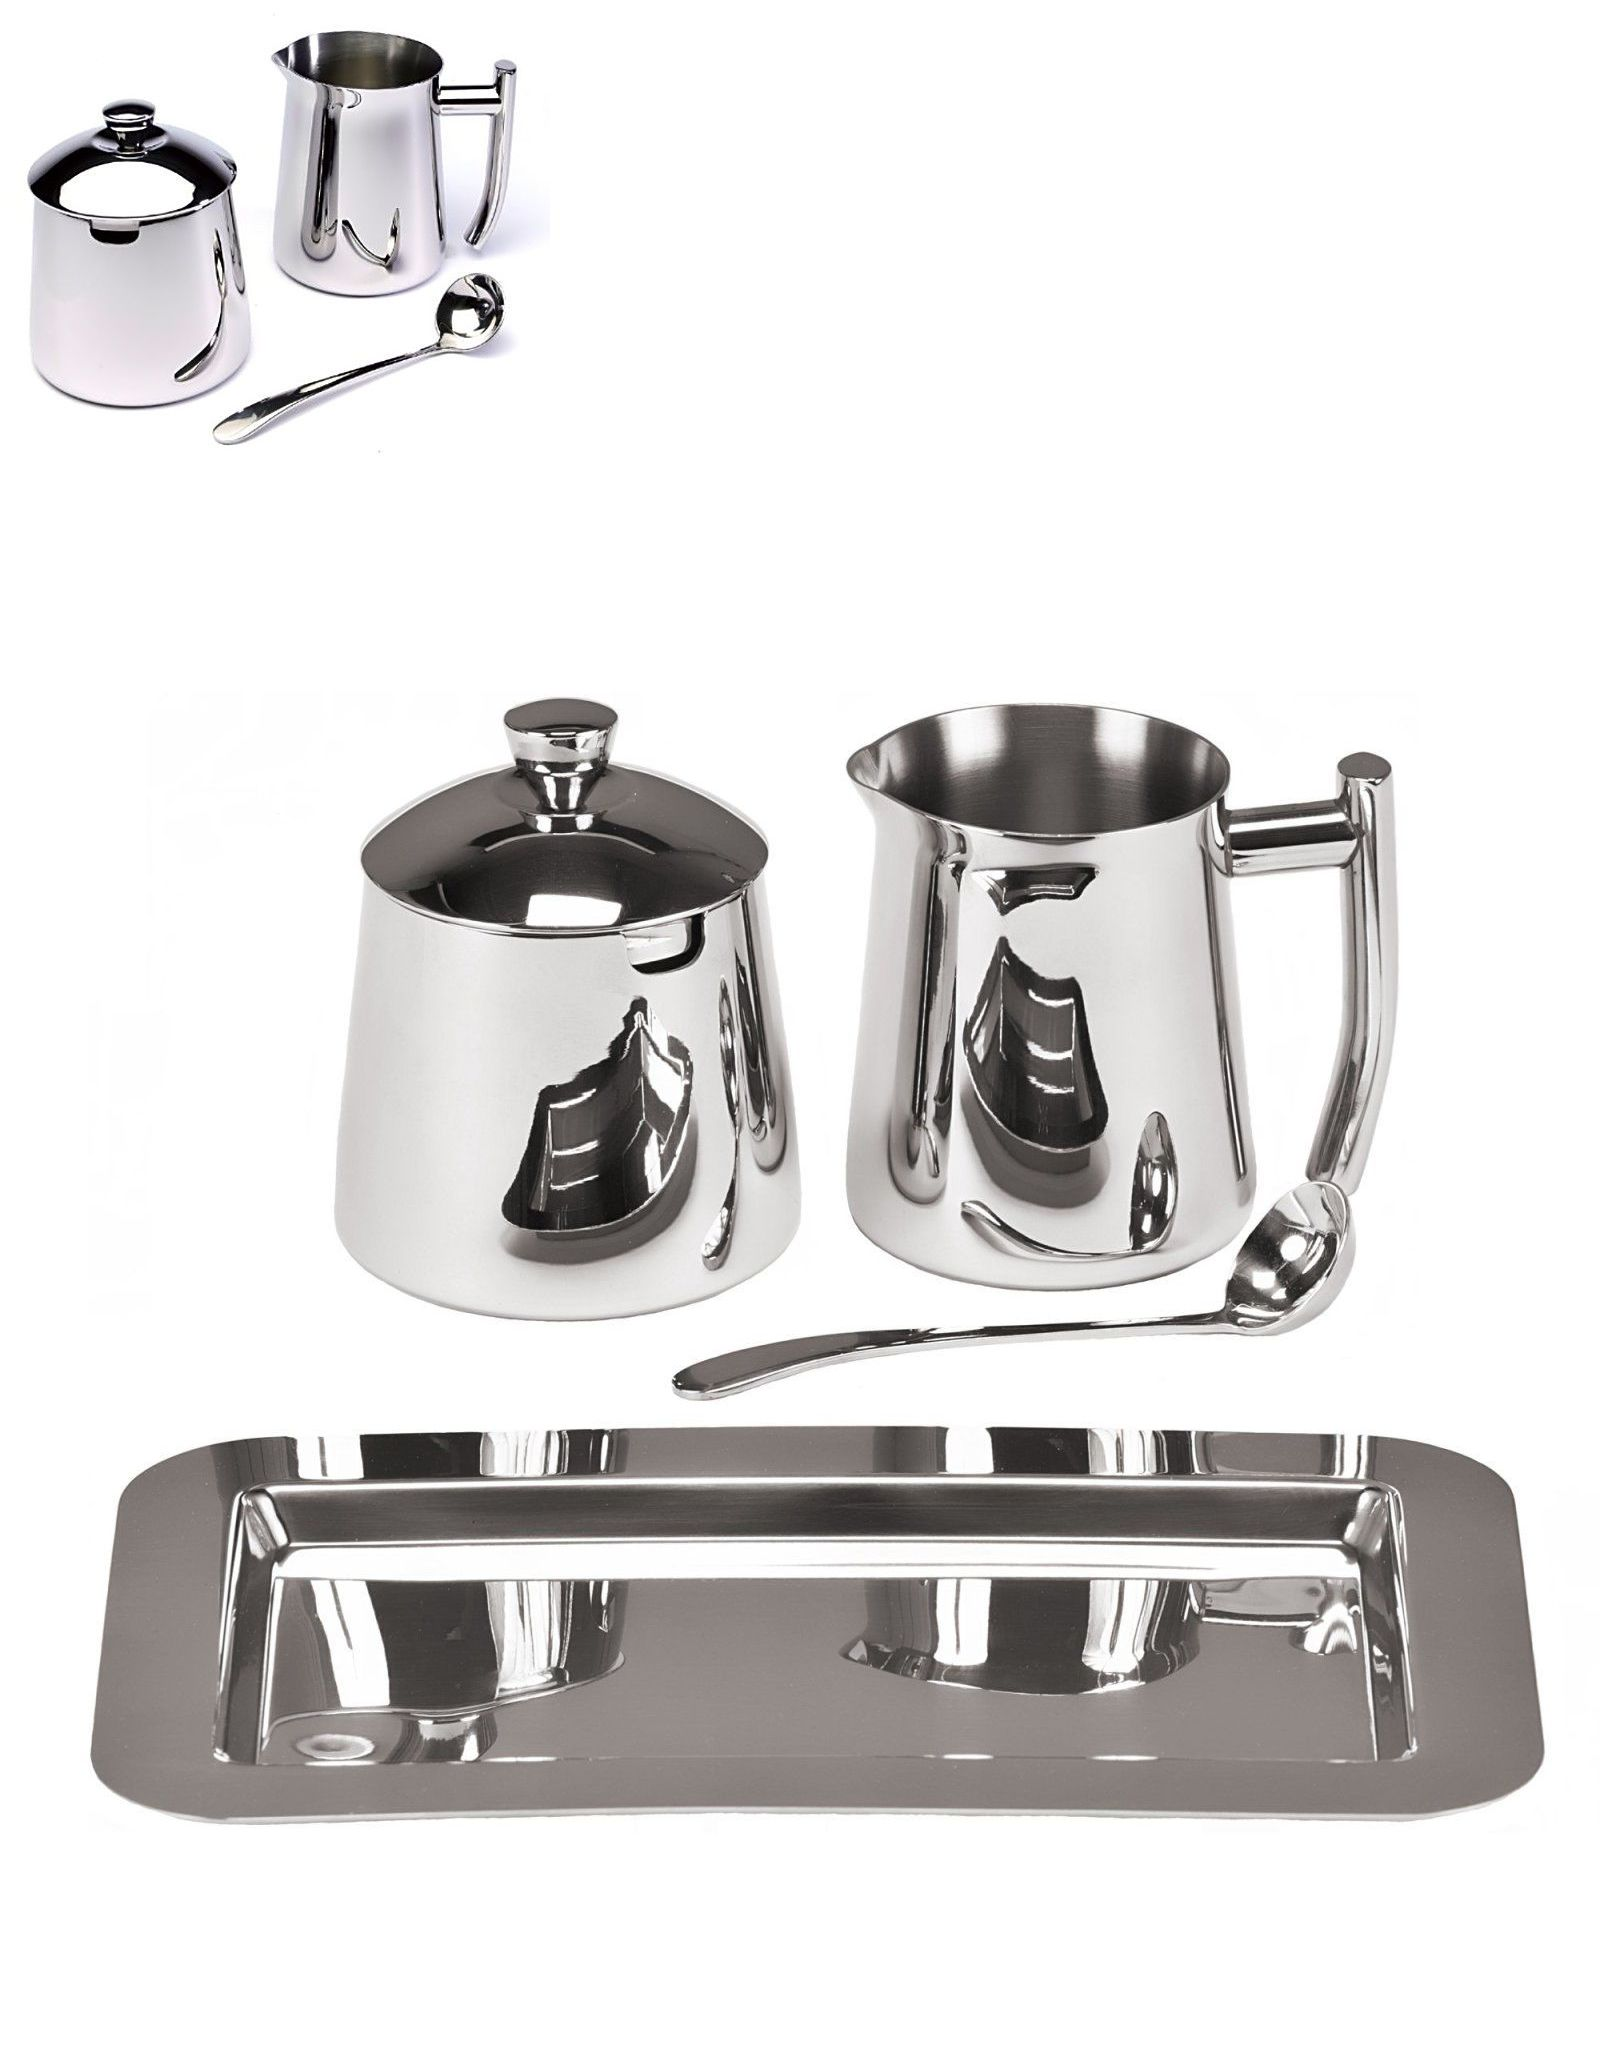 Frieling Usa and sugar 103434 frieling usa 18 10 stainless steel creamer